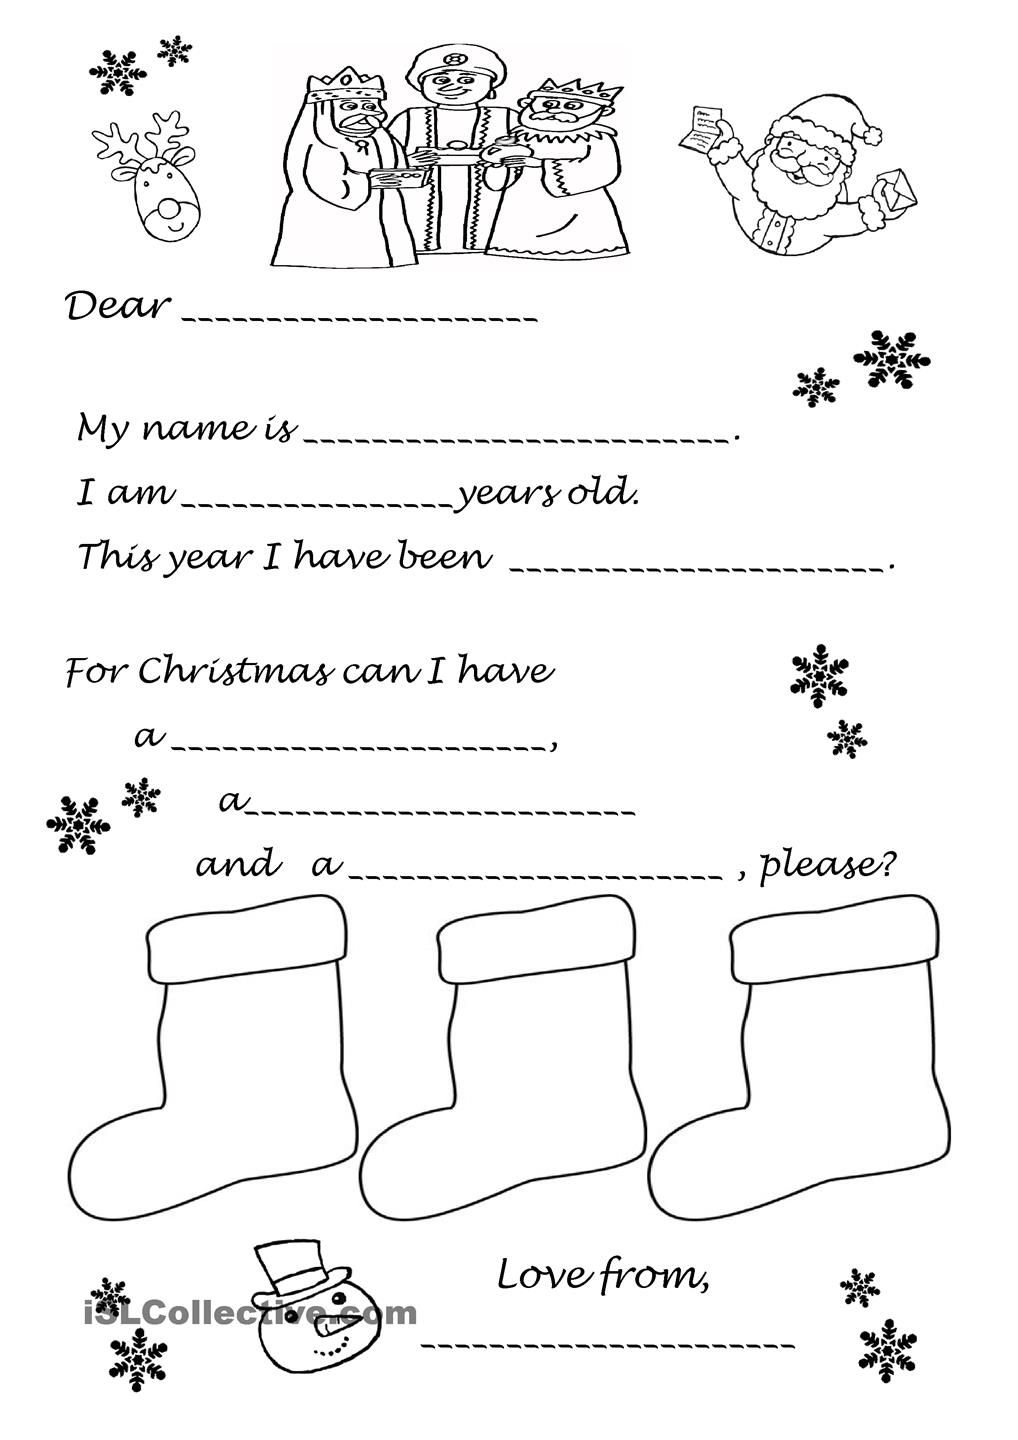 Letter to father christmas or the magic kings art pinterest letter to father christmas or the magic kings spiritdancerdesigns Gallery